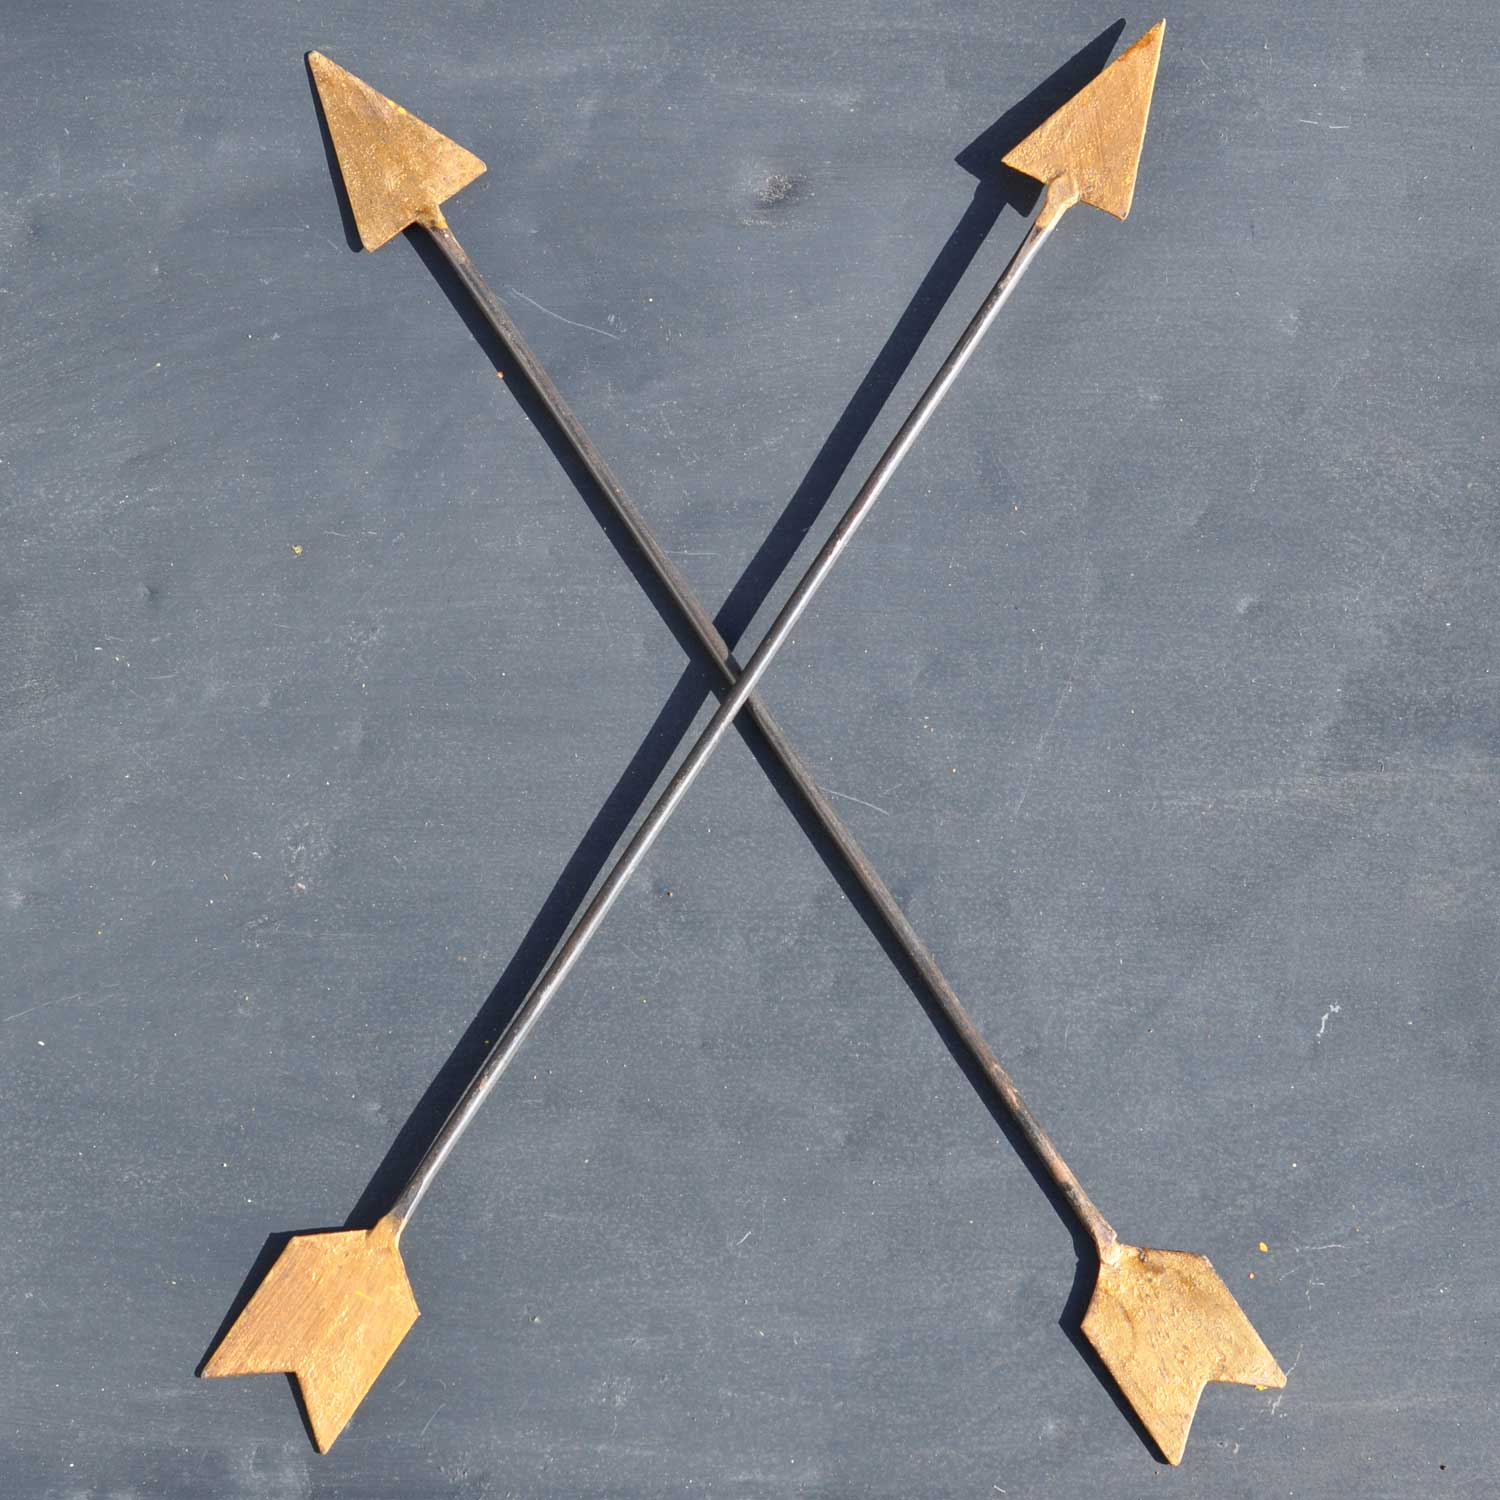 Vintage Inspired Metal Arrow Wall Art - Home Decor